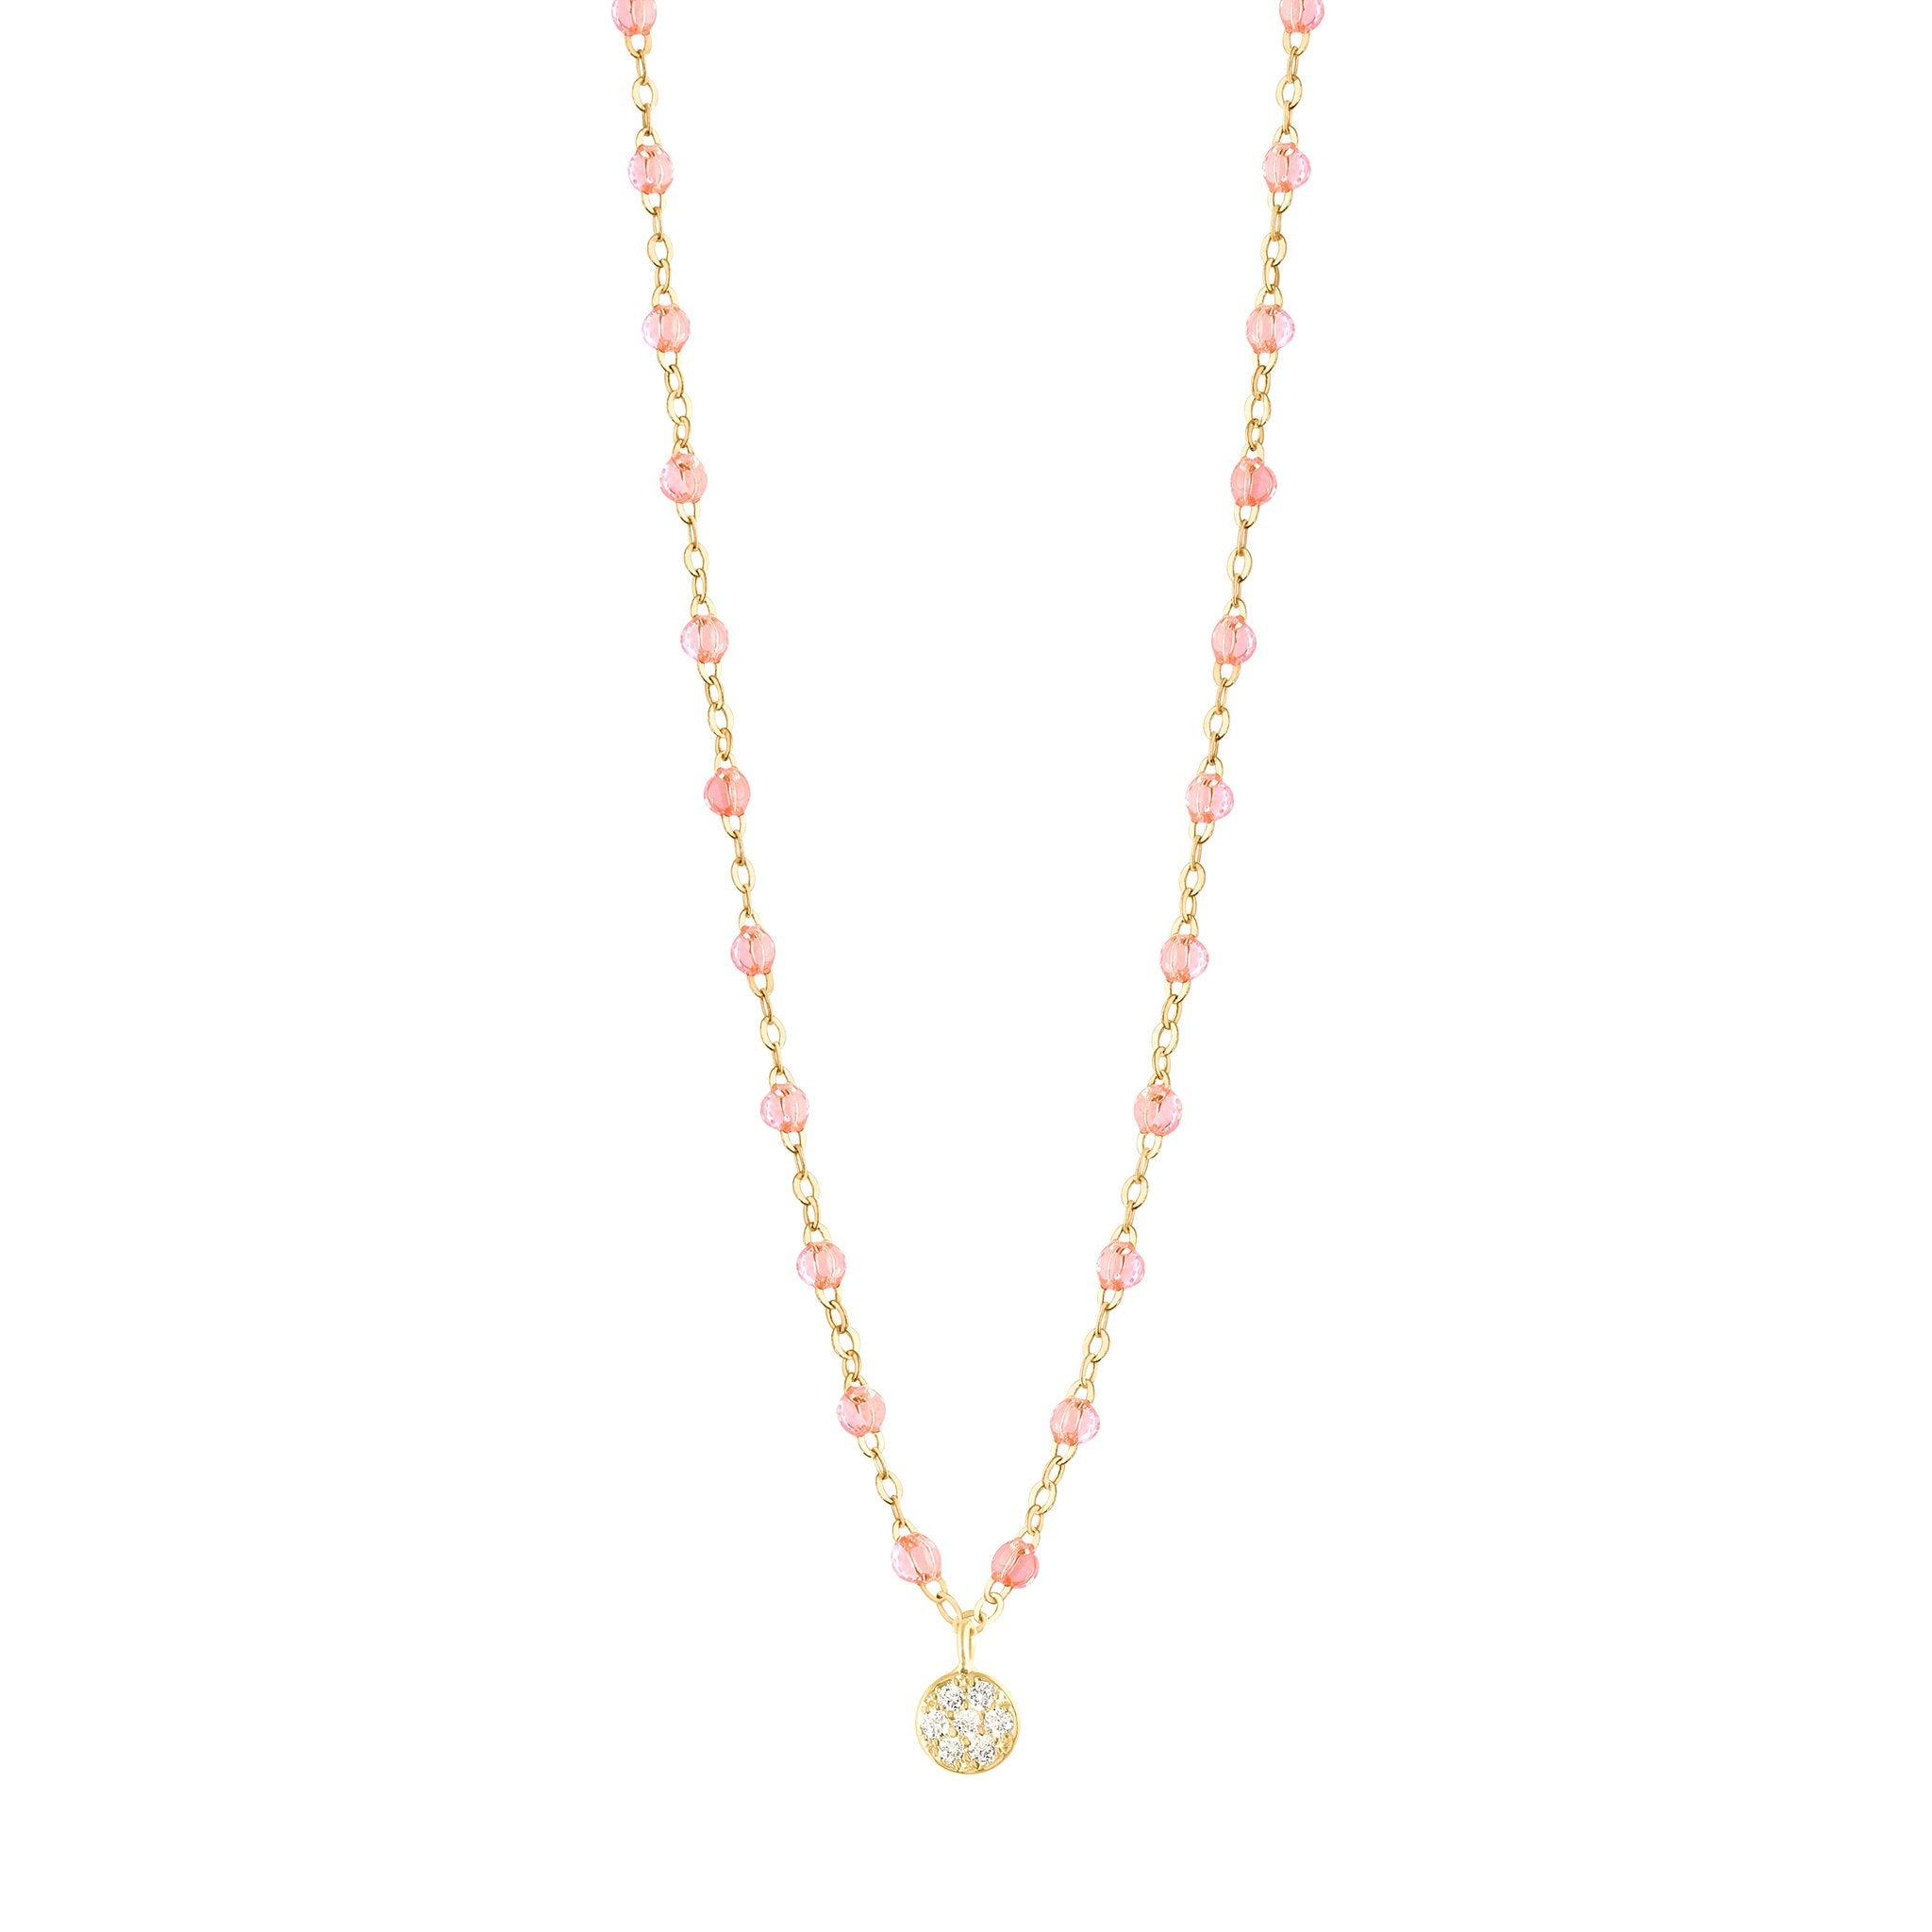 Gigi Clozeau - Puce Classic Gigi Rosée diamonds necklace, Yellow Gold, 16.5""